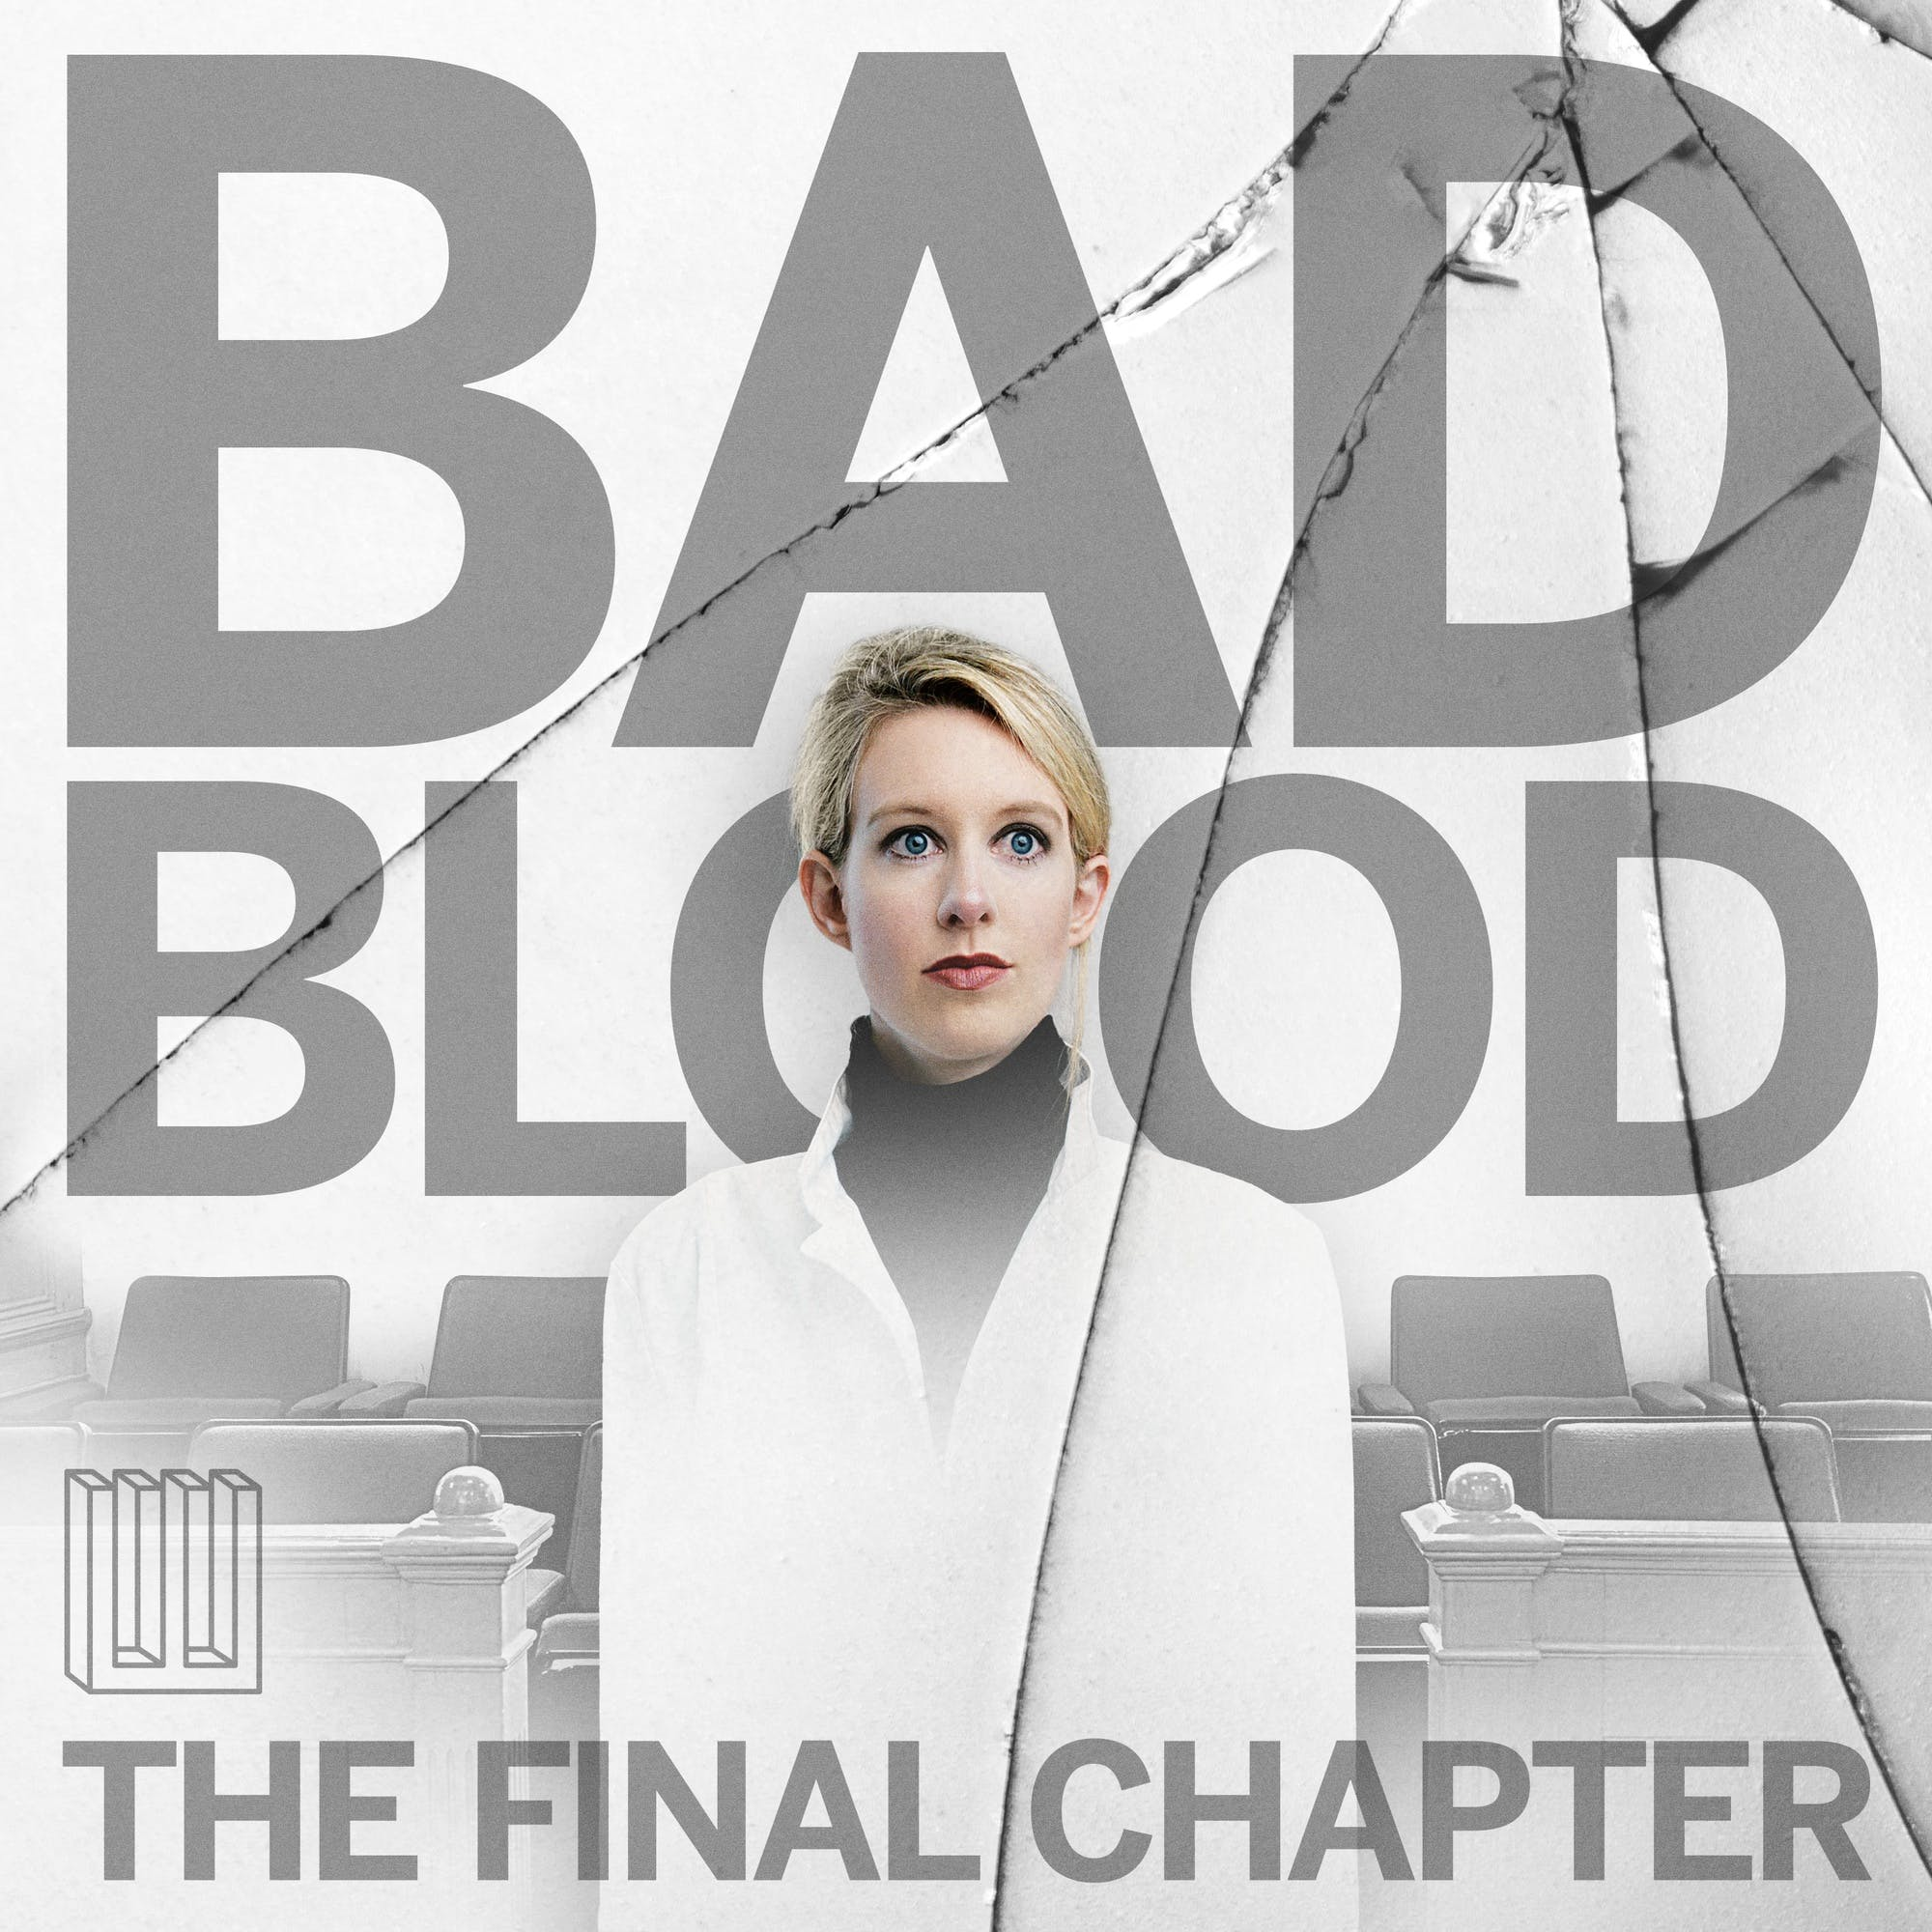 Introducing Bad Blood: The Final Chapter